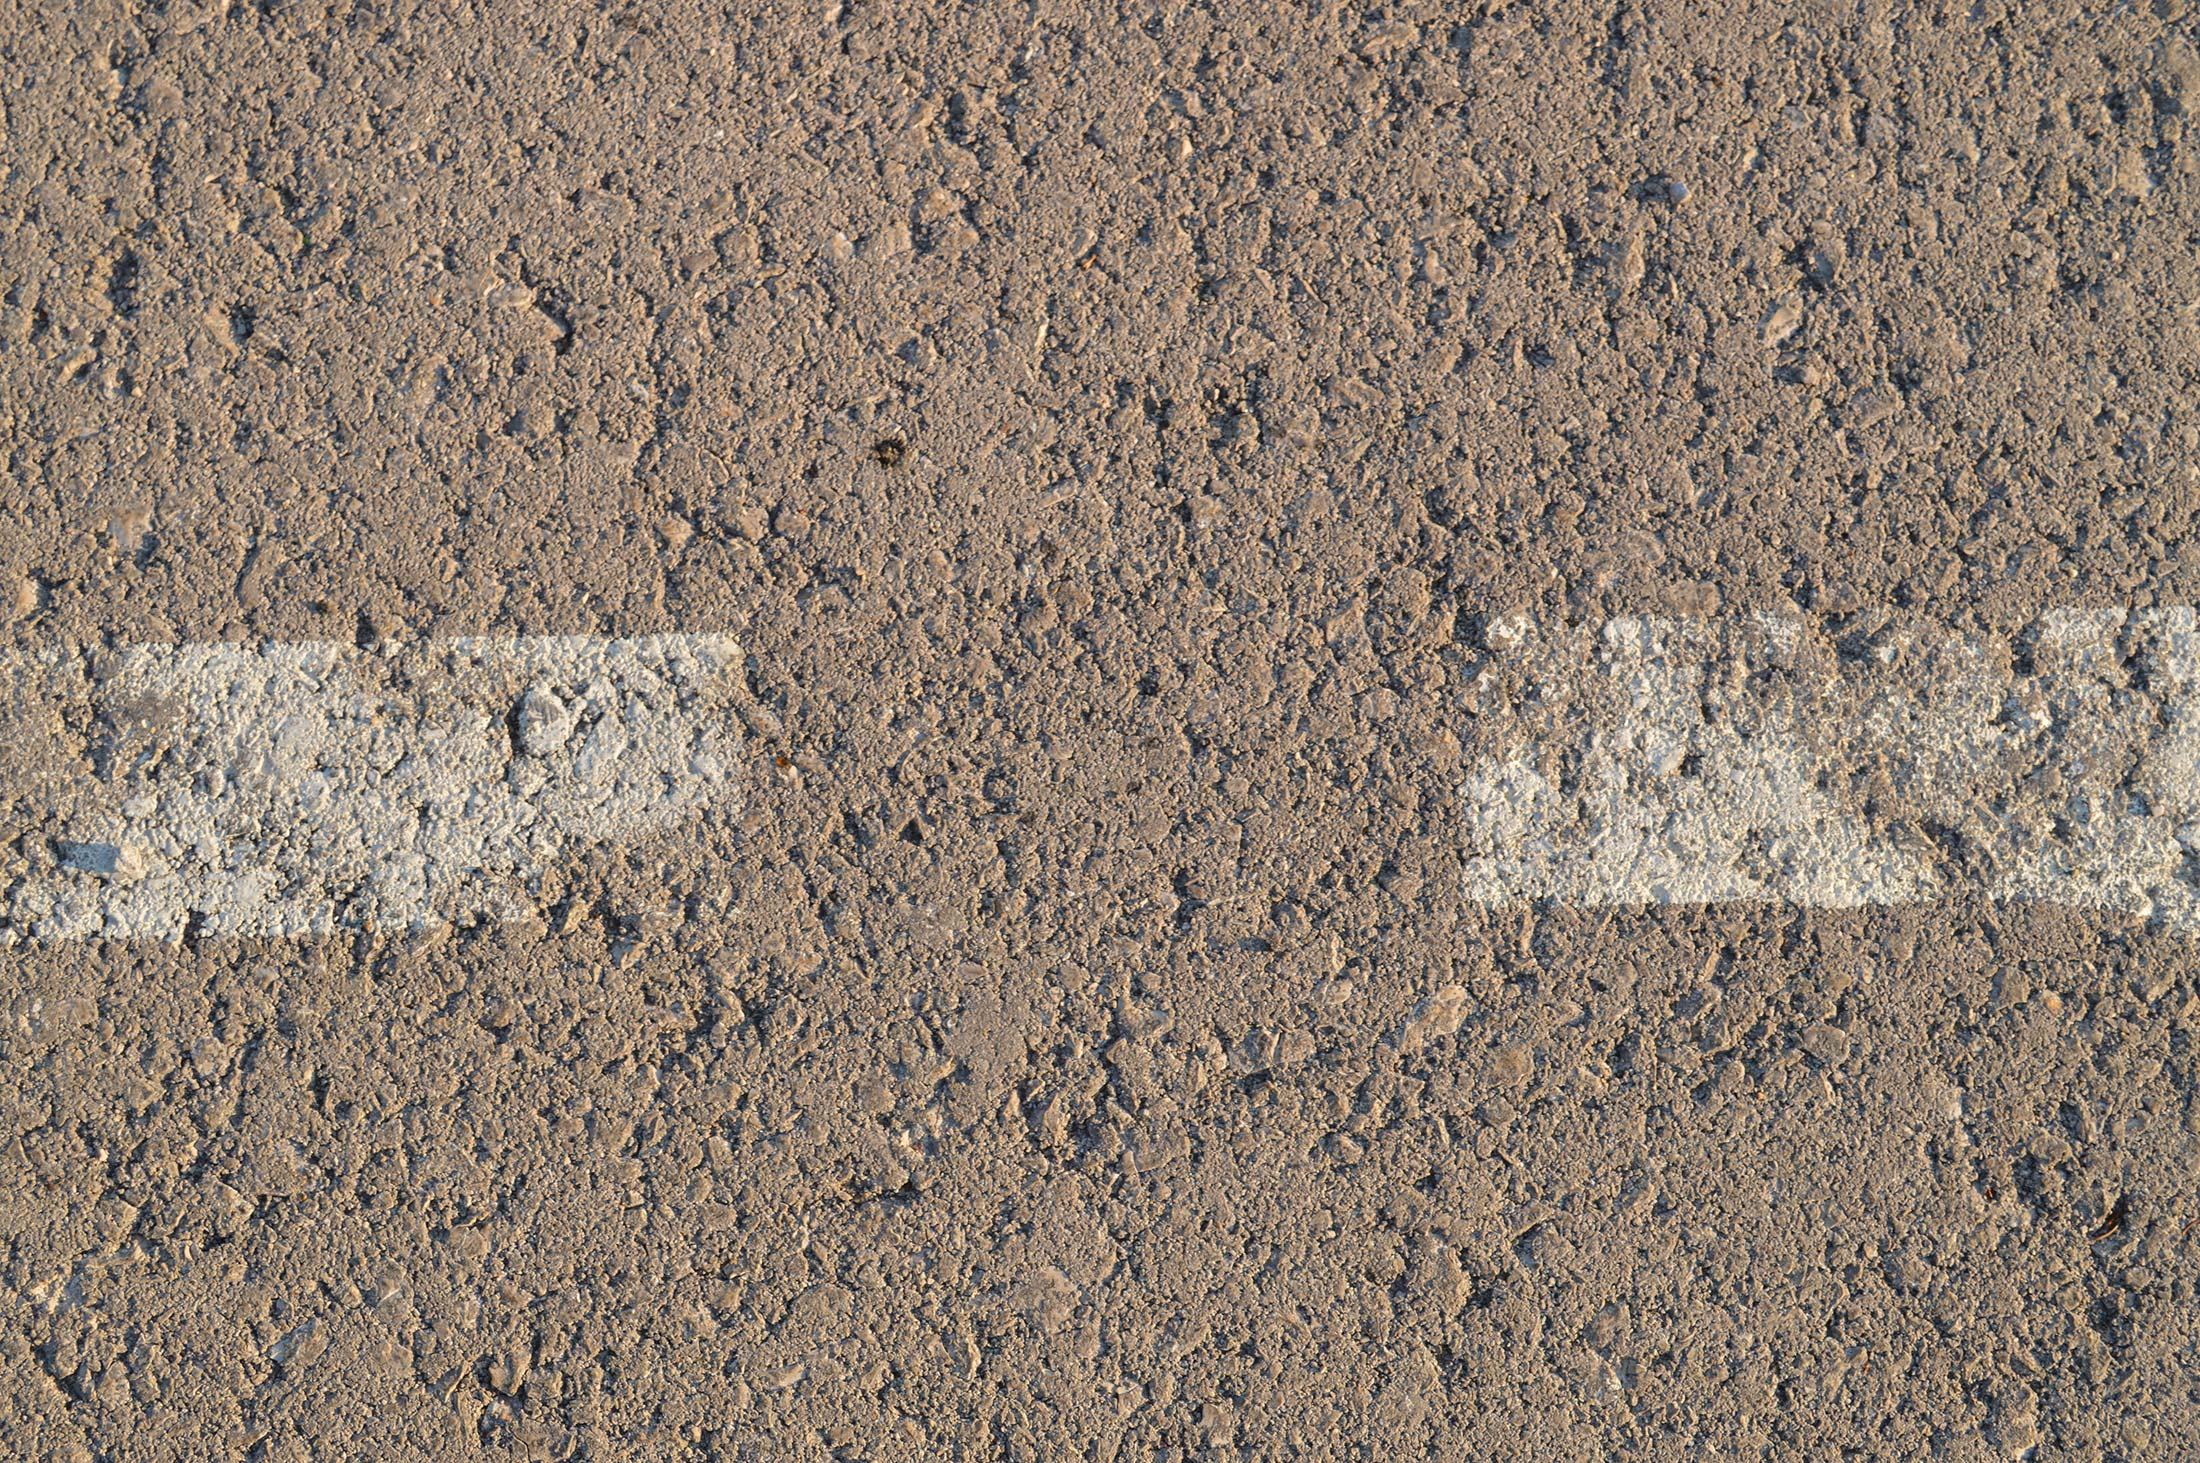 Asphalt with two white lines by Mish-A-Man